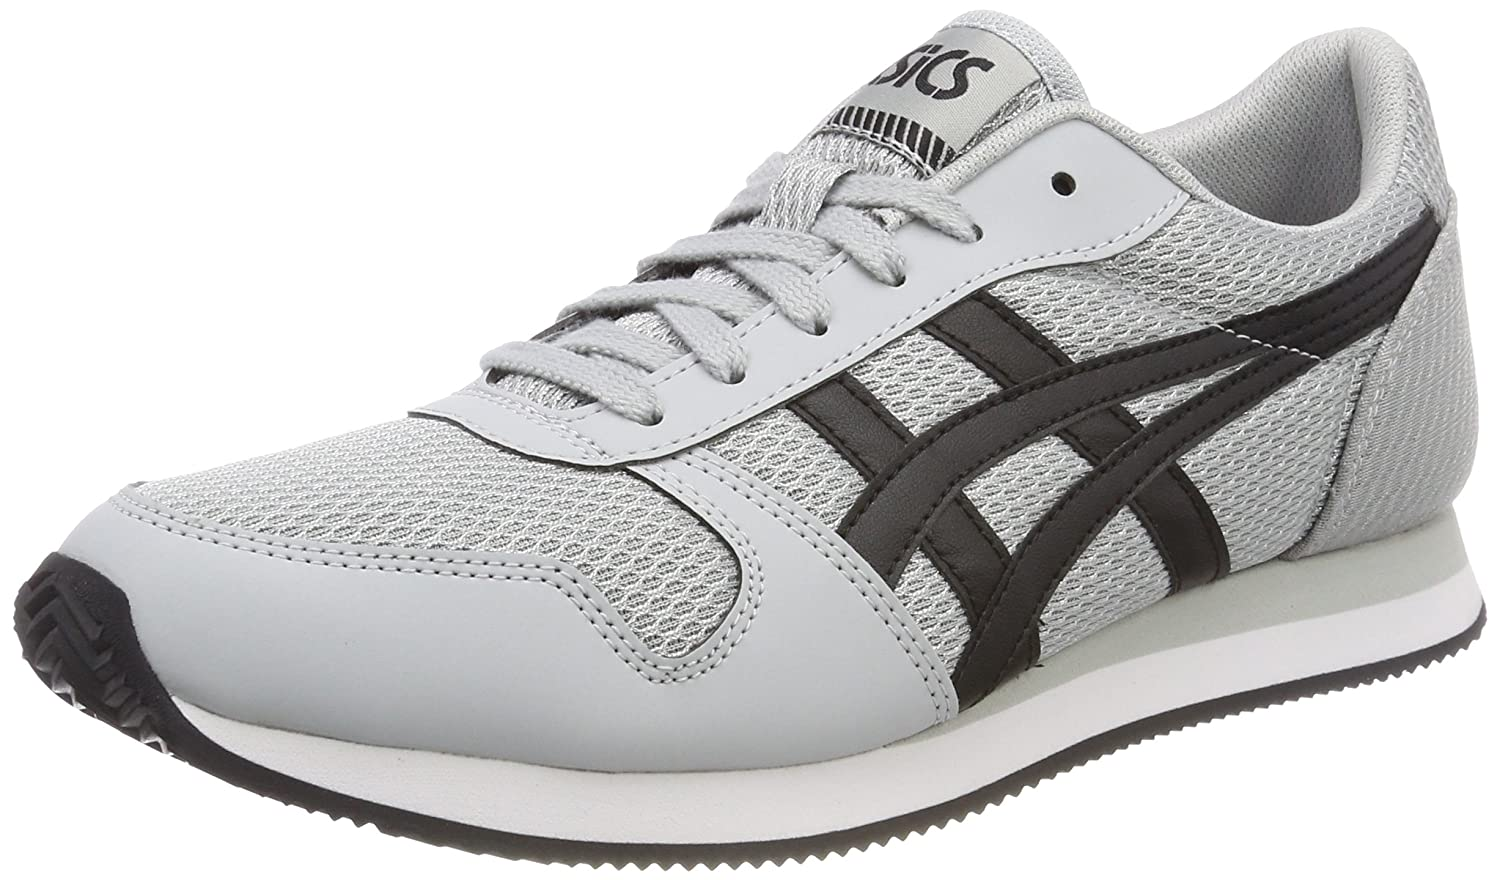 Asics Tiger Curreo Ii Shoes Fashion Sneakers Sepatu Bayi Onitsuka White